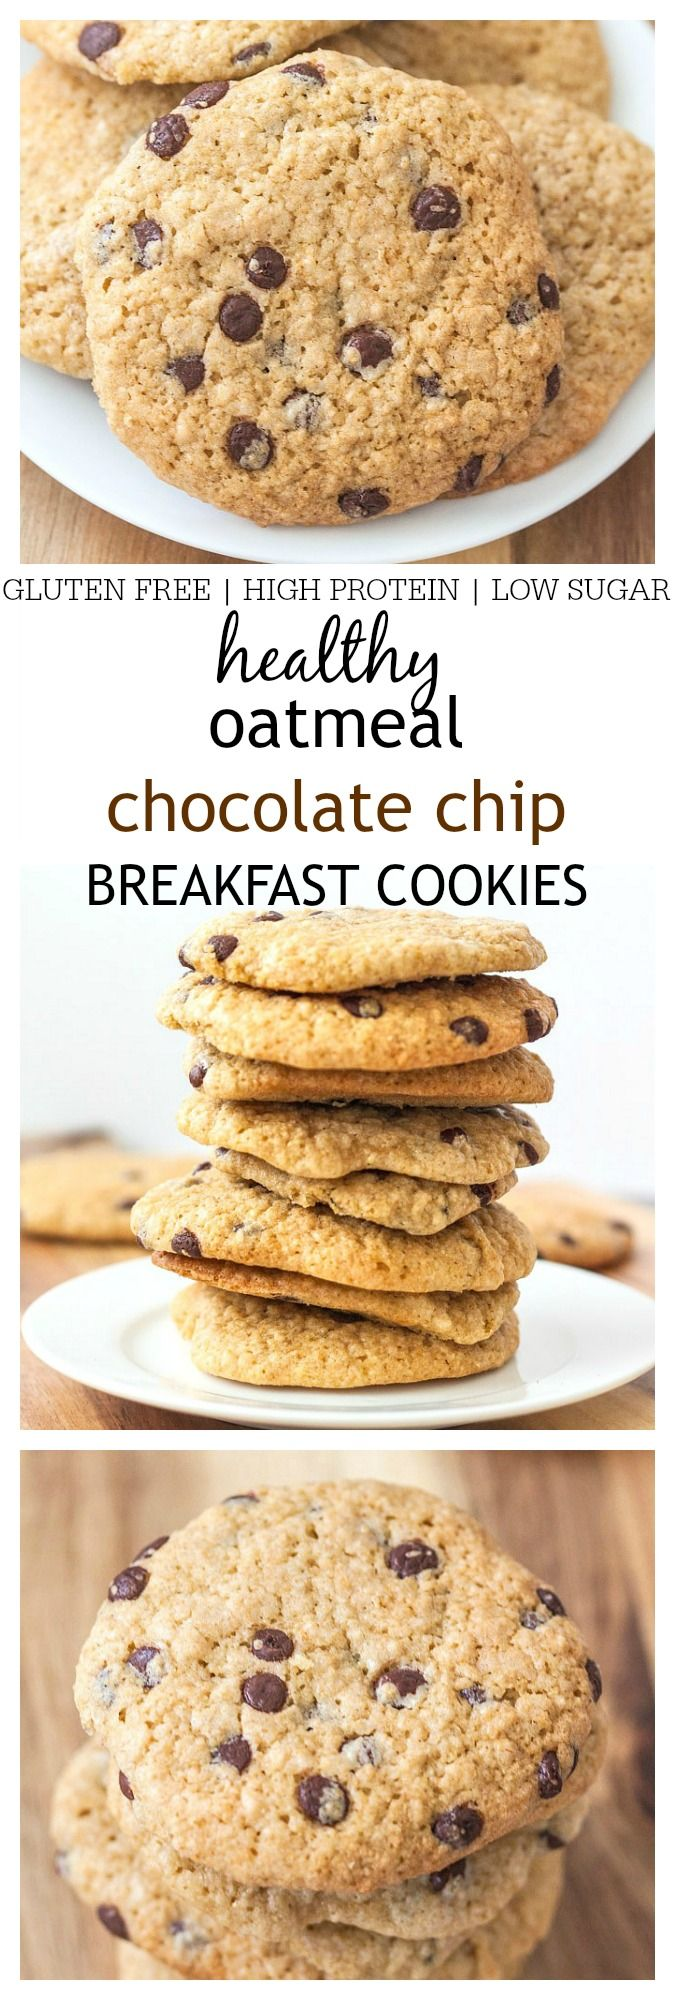 Healthy Oatmeal Chocolate Chip Breakfast Cookies- 1 bowl and 10 minutes is all you'll need for these chewy cookies- Gluten Free, High in protein + Vegan option! @thebigmansworld -thebigmansworld.com